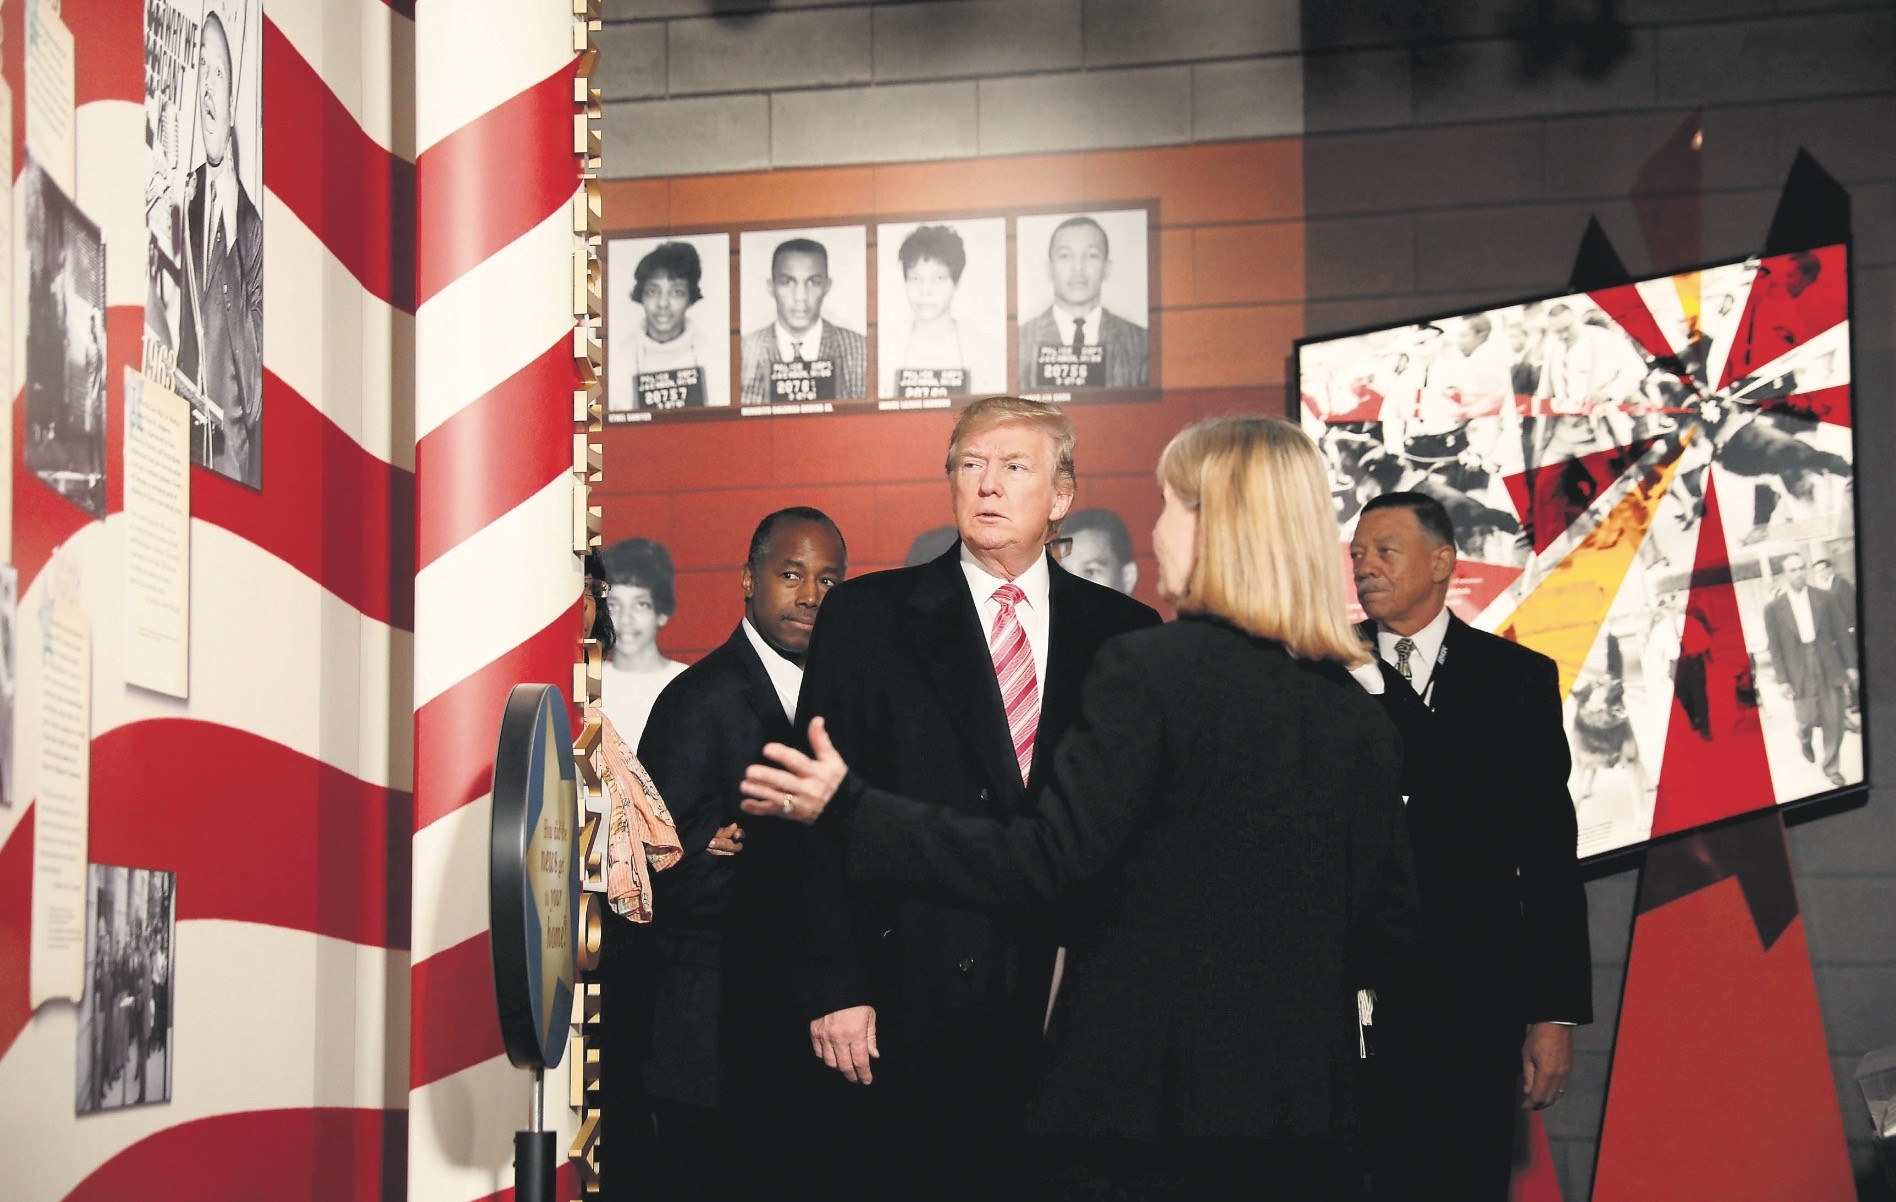 President Trump visits the Civil Rights Museum in Jackson, Mississippi, Dec. 9.